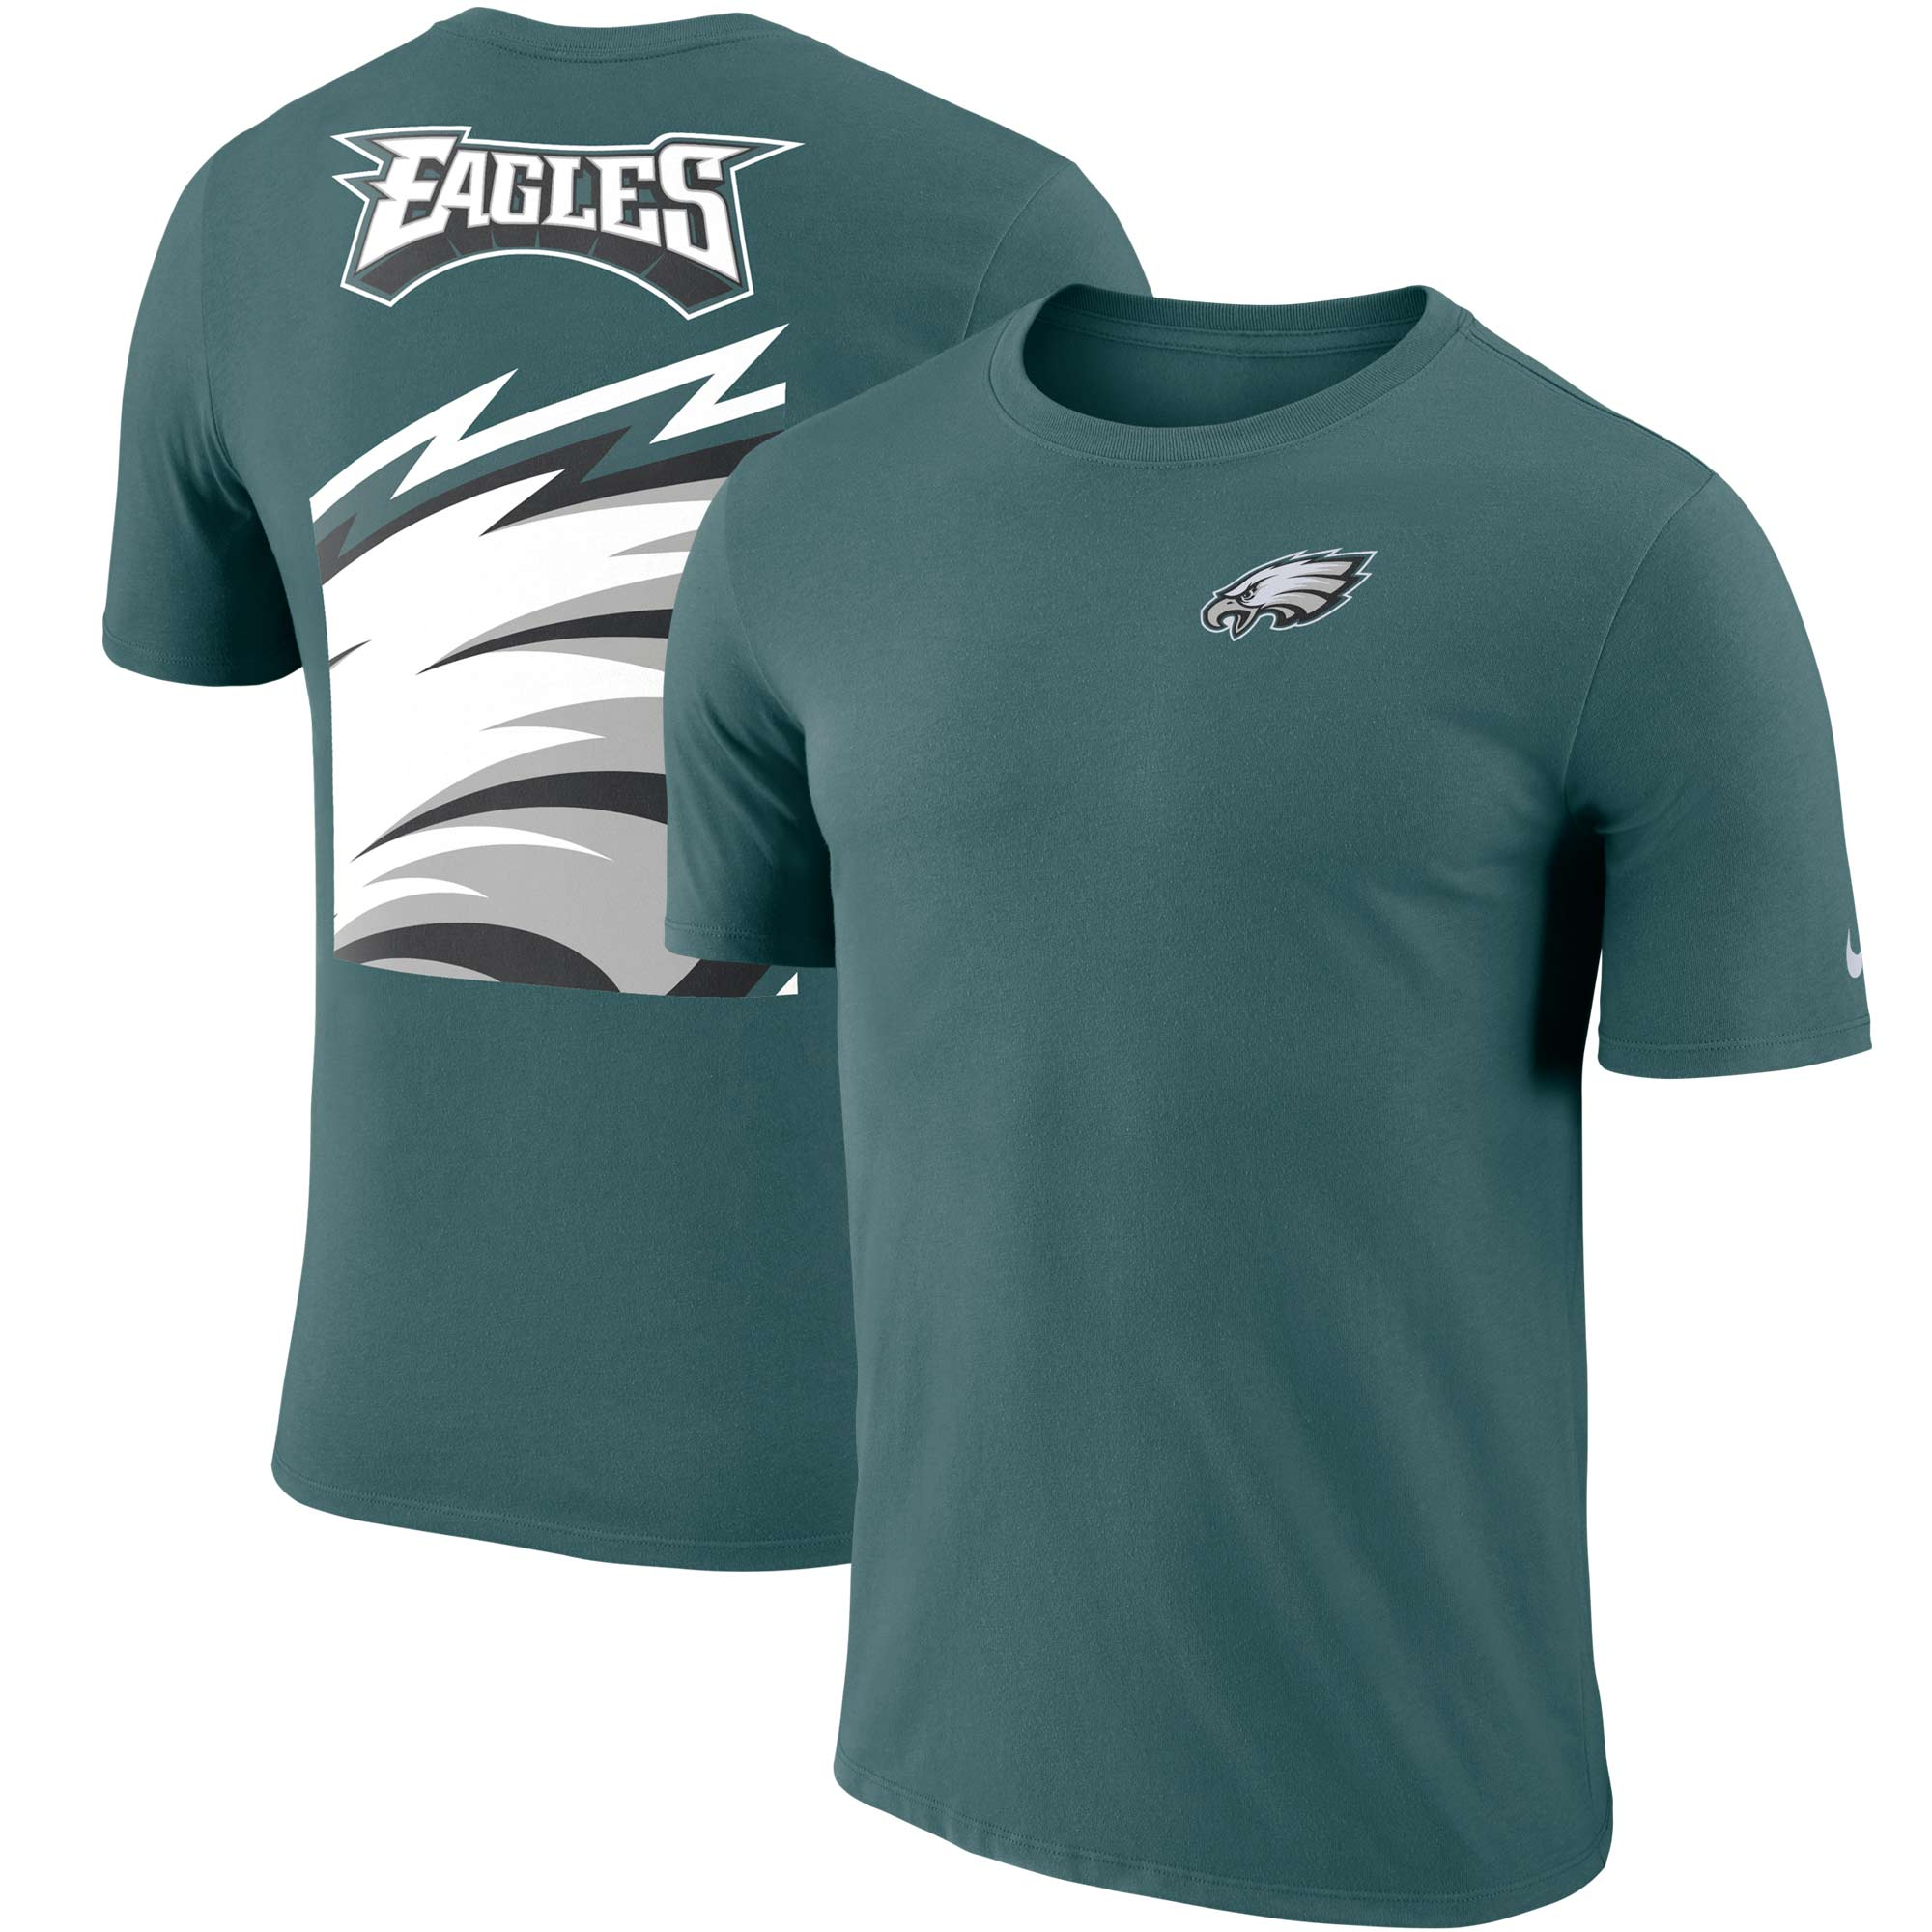 Philadelphia Eagles Nike Performance Crew Champ T-Shirt - Midnight Green